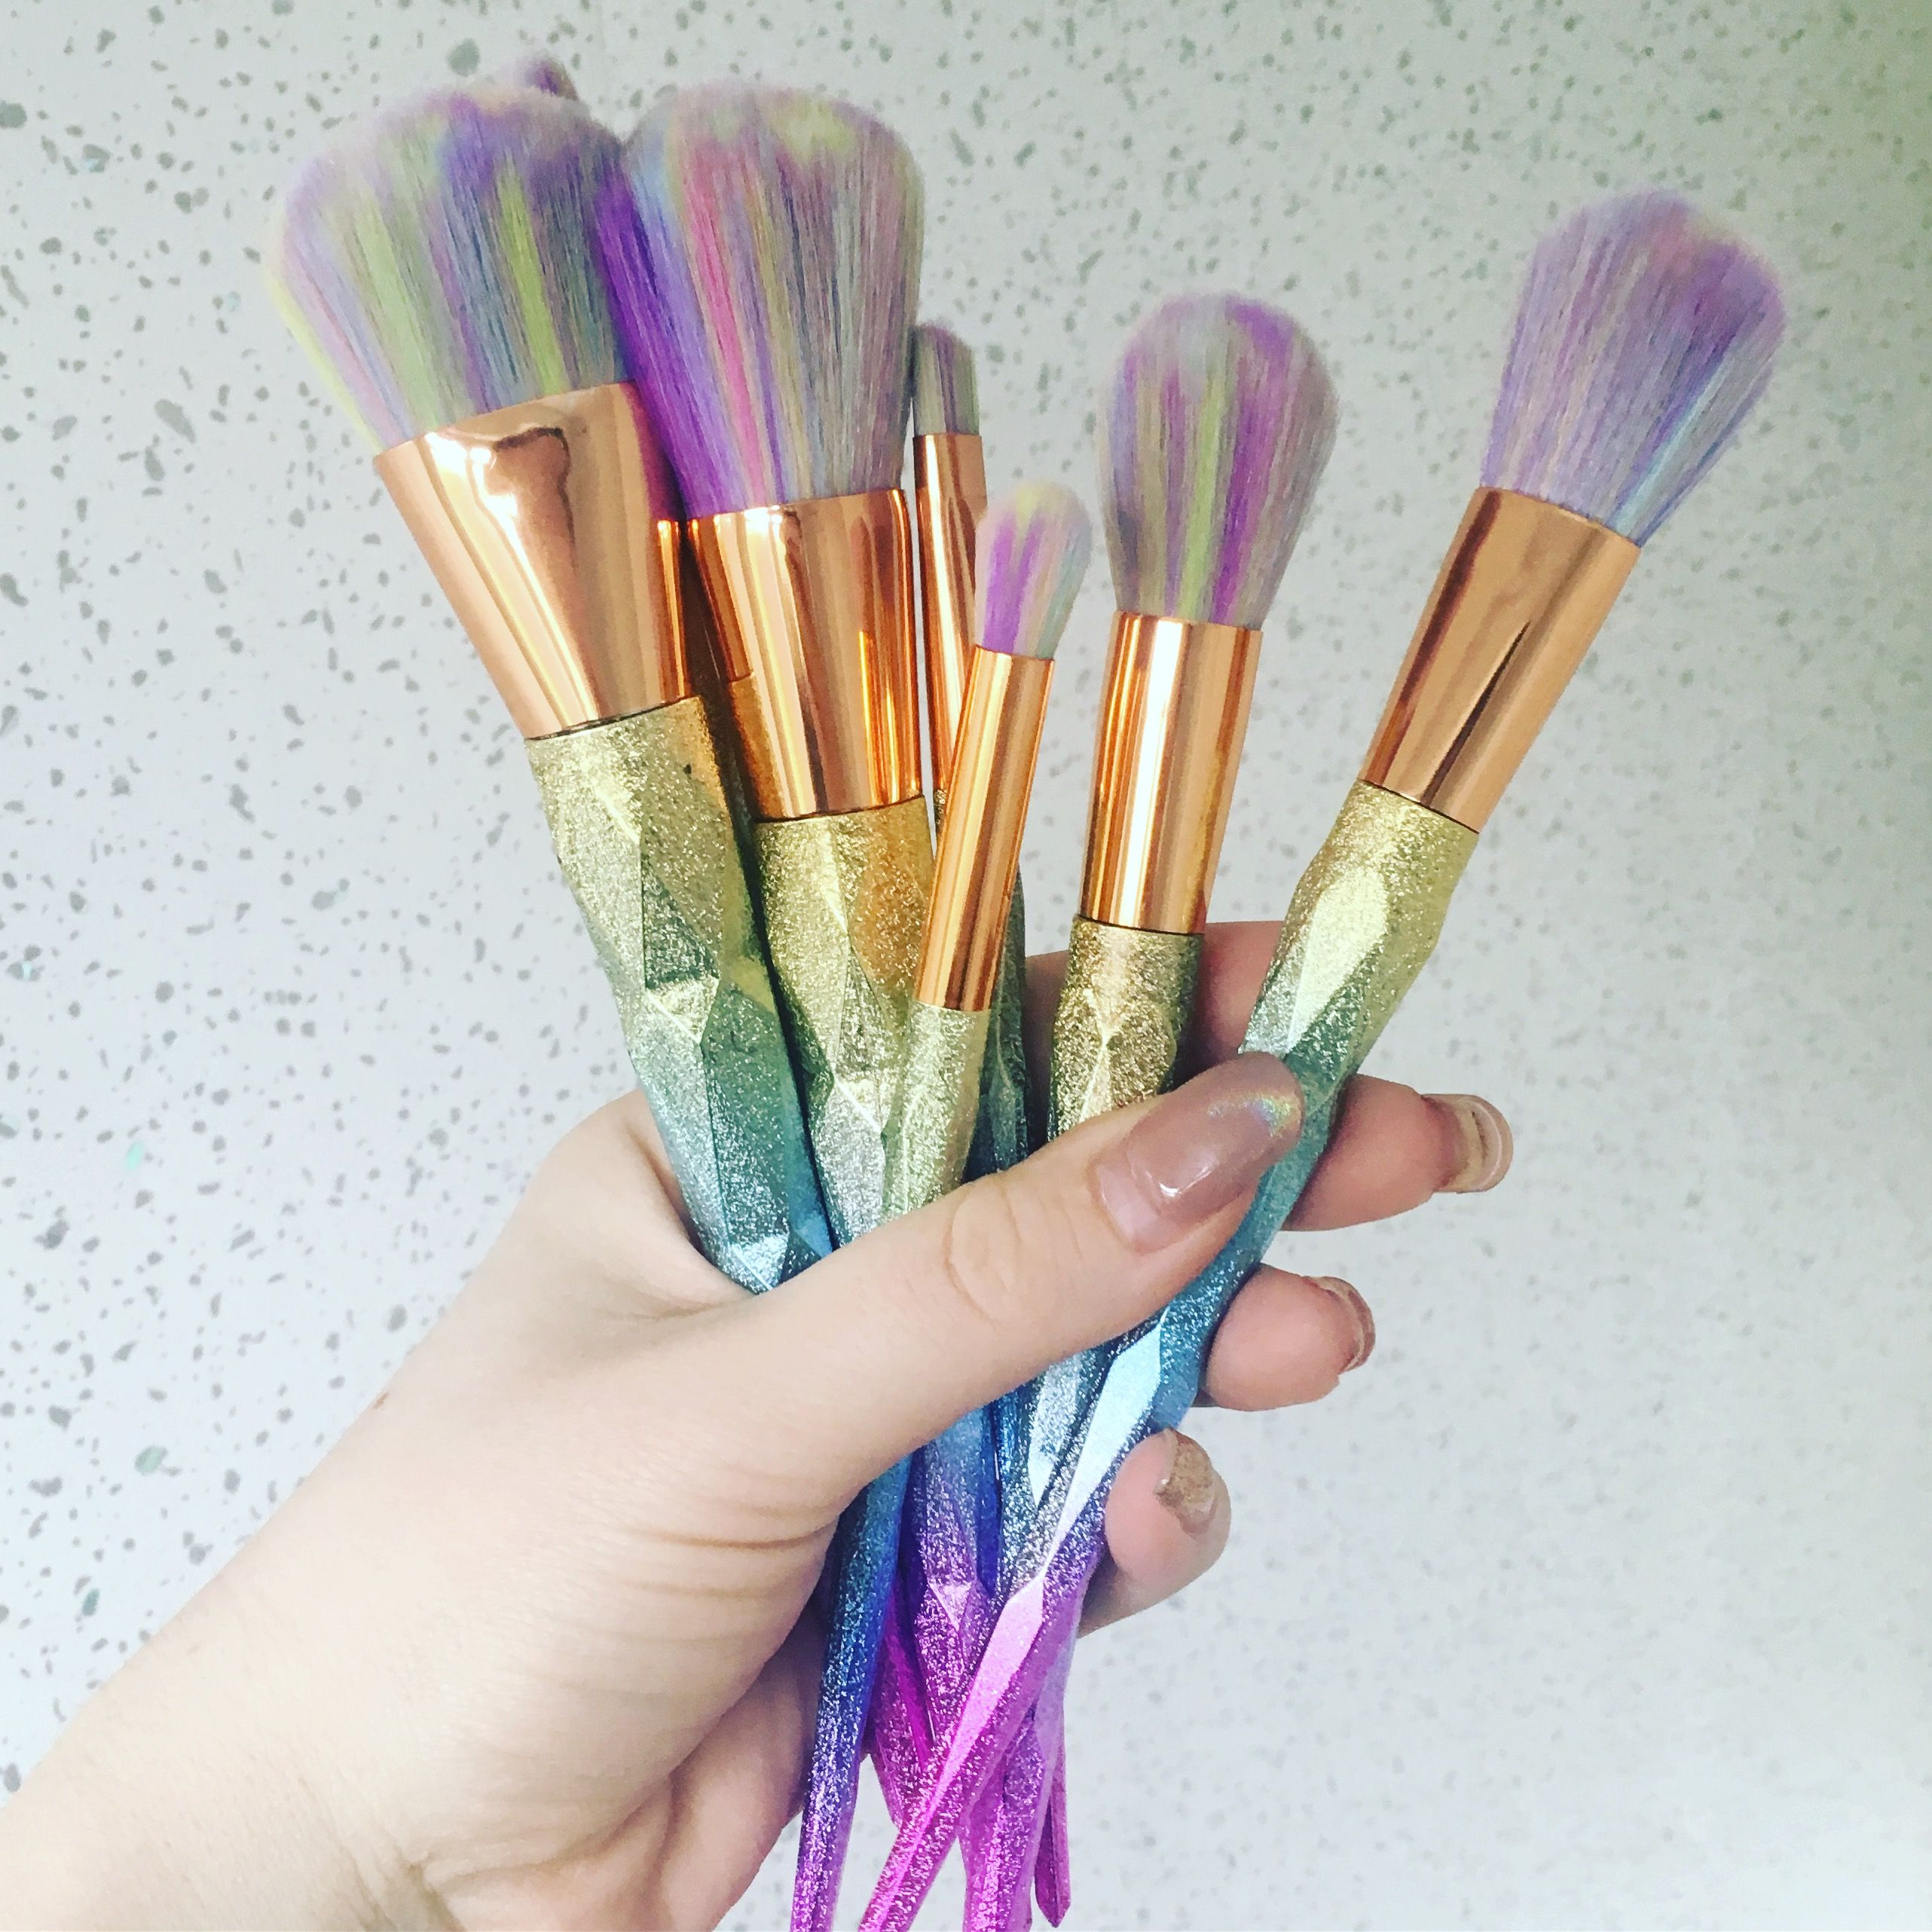 Pin by ภัทรษร พรมทอง on brushes Makeup brushes, Makeup